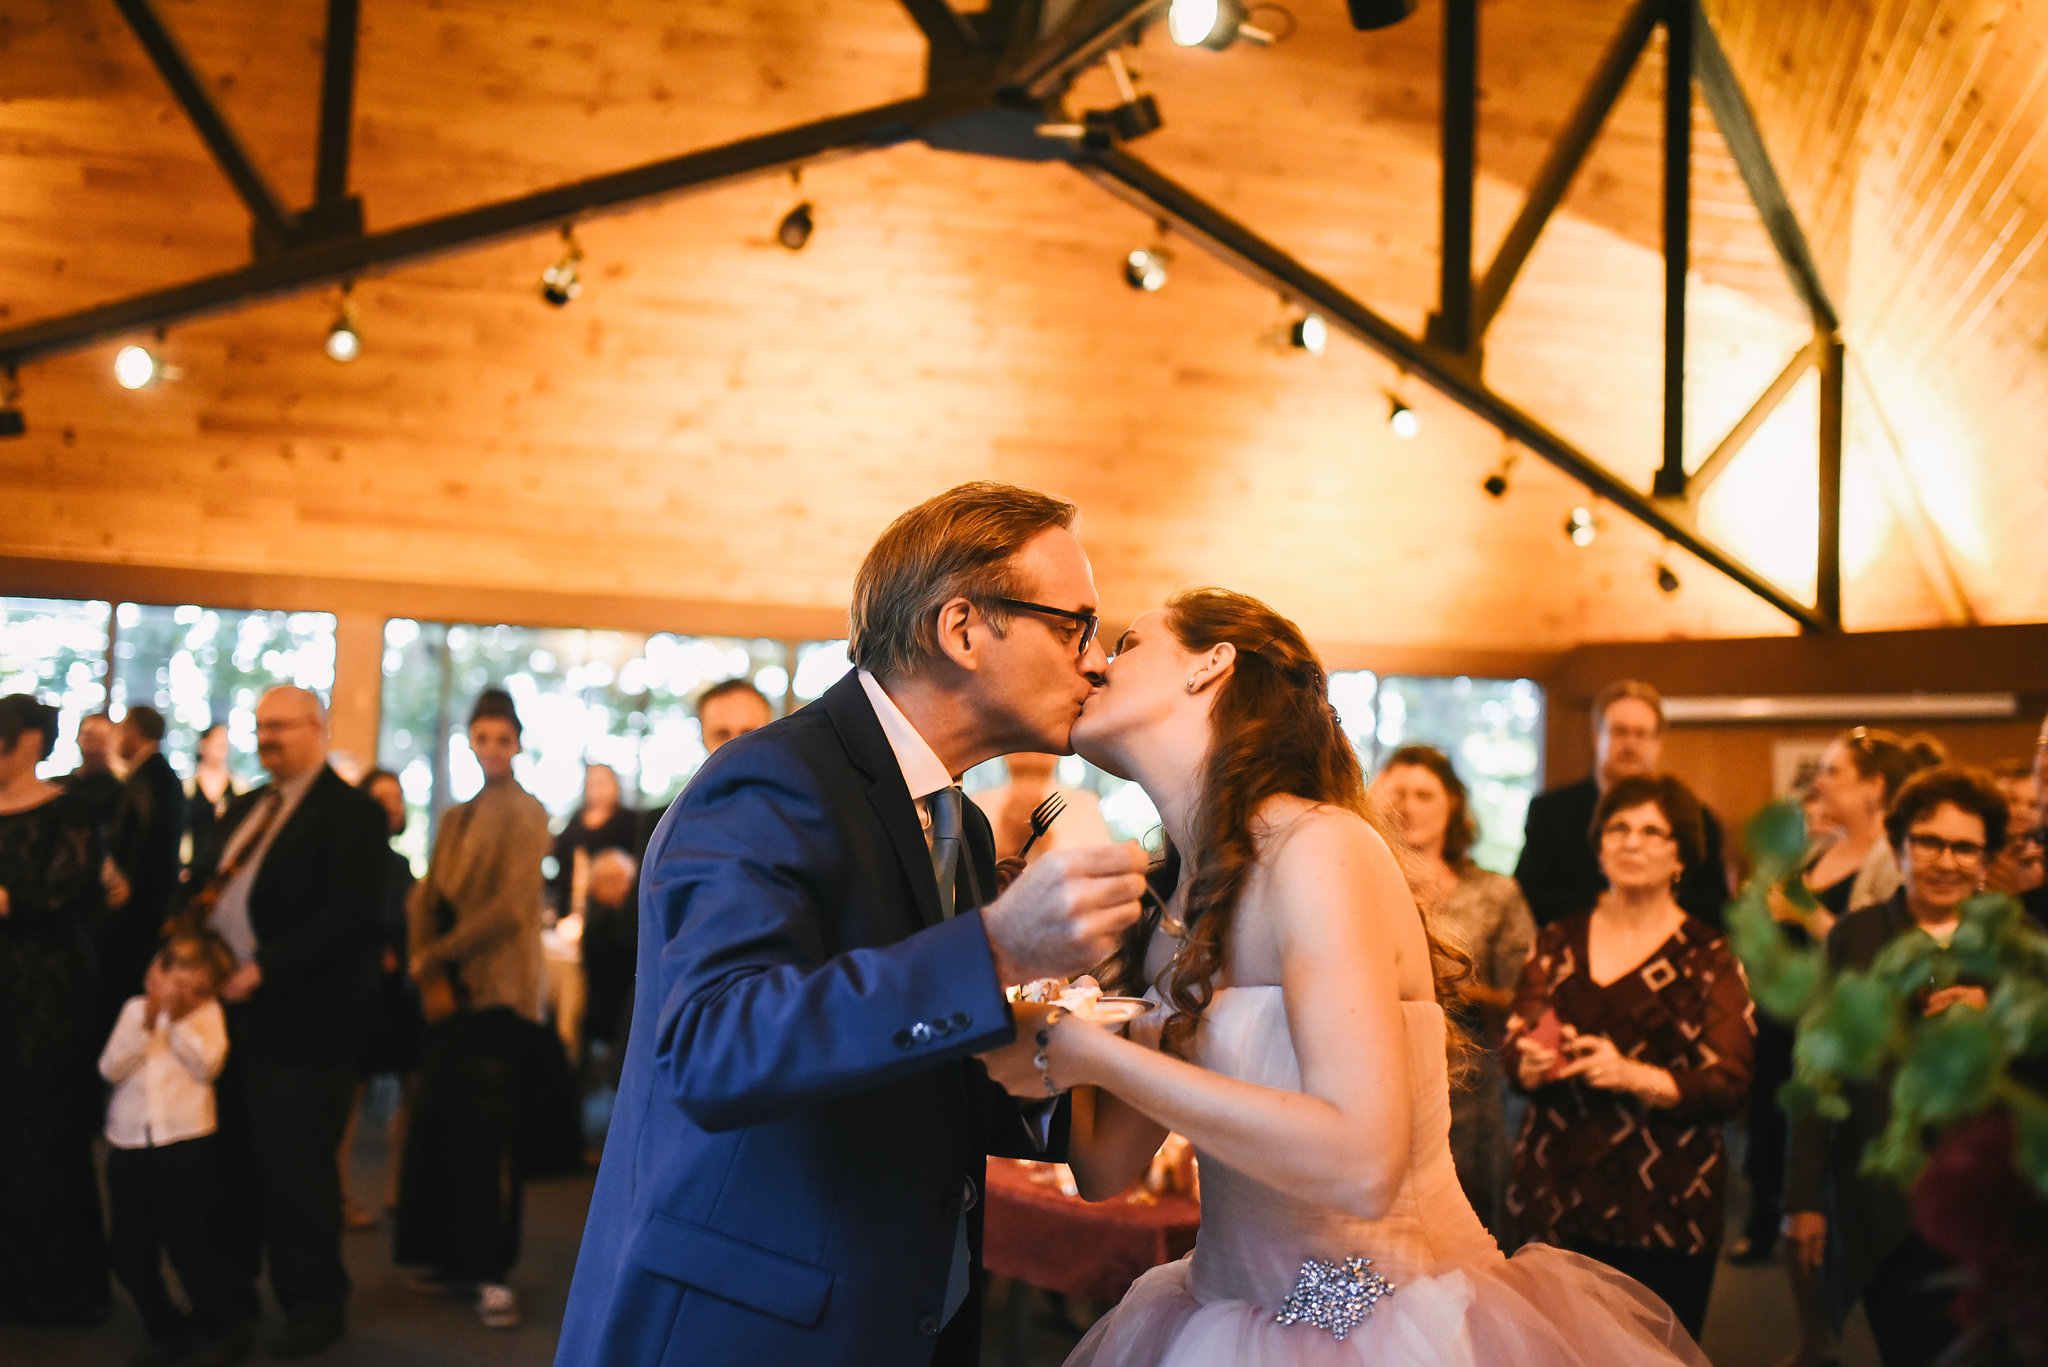 Vintage, DIY, Rustic, Germantown, Baltimore Wedding Photographer, Alternative, Casual, Outdoor Wedding, Church Wedding, Whimsical, Campground, Kiss Photo, Bride and Groom, Wedding Reception